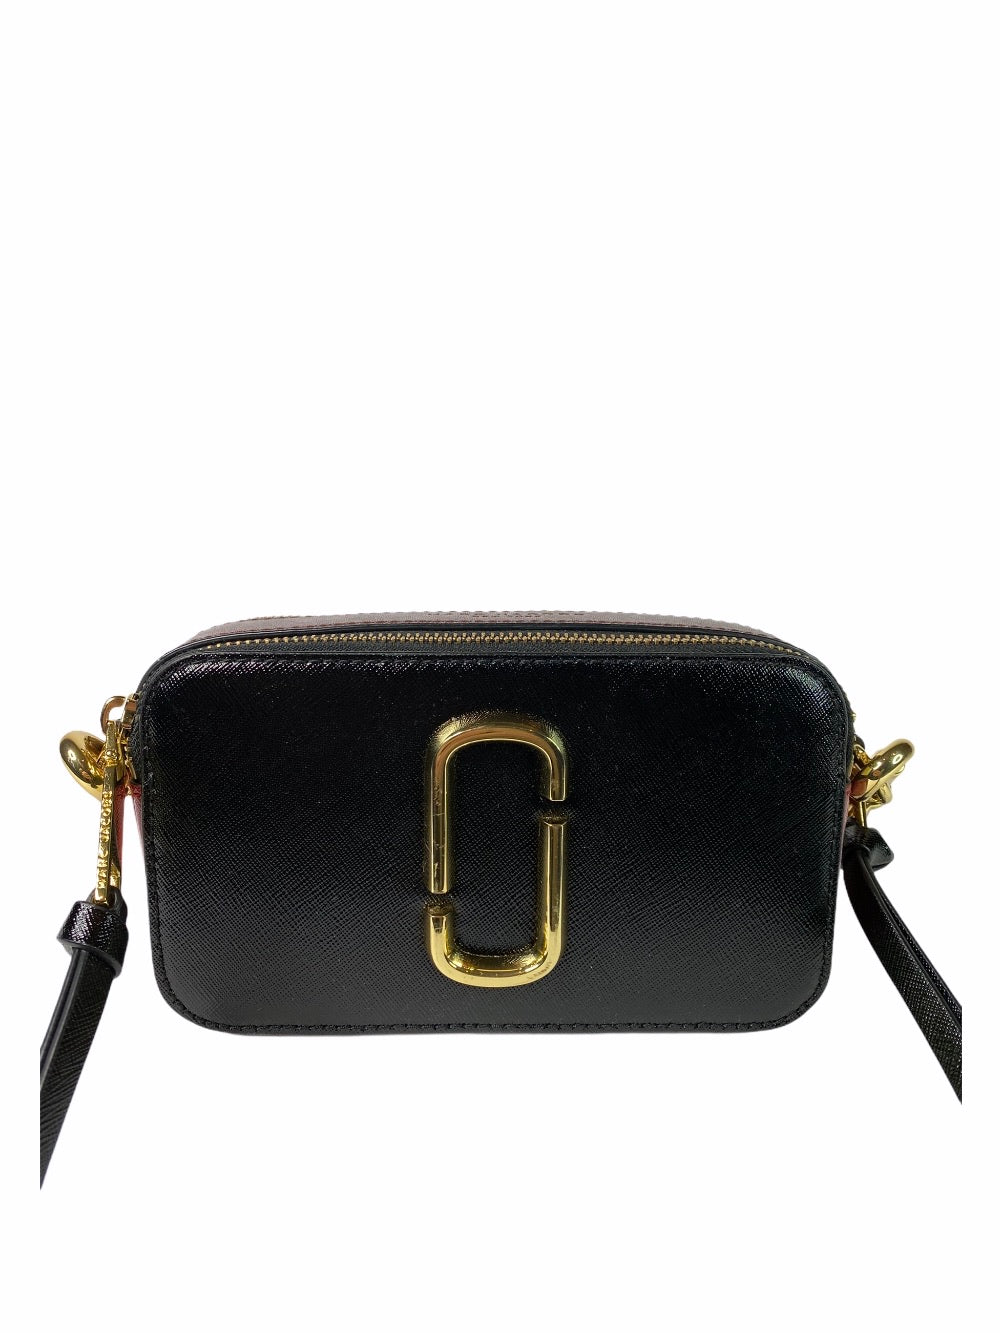 Marc Jacobs MultiColor Leather